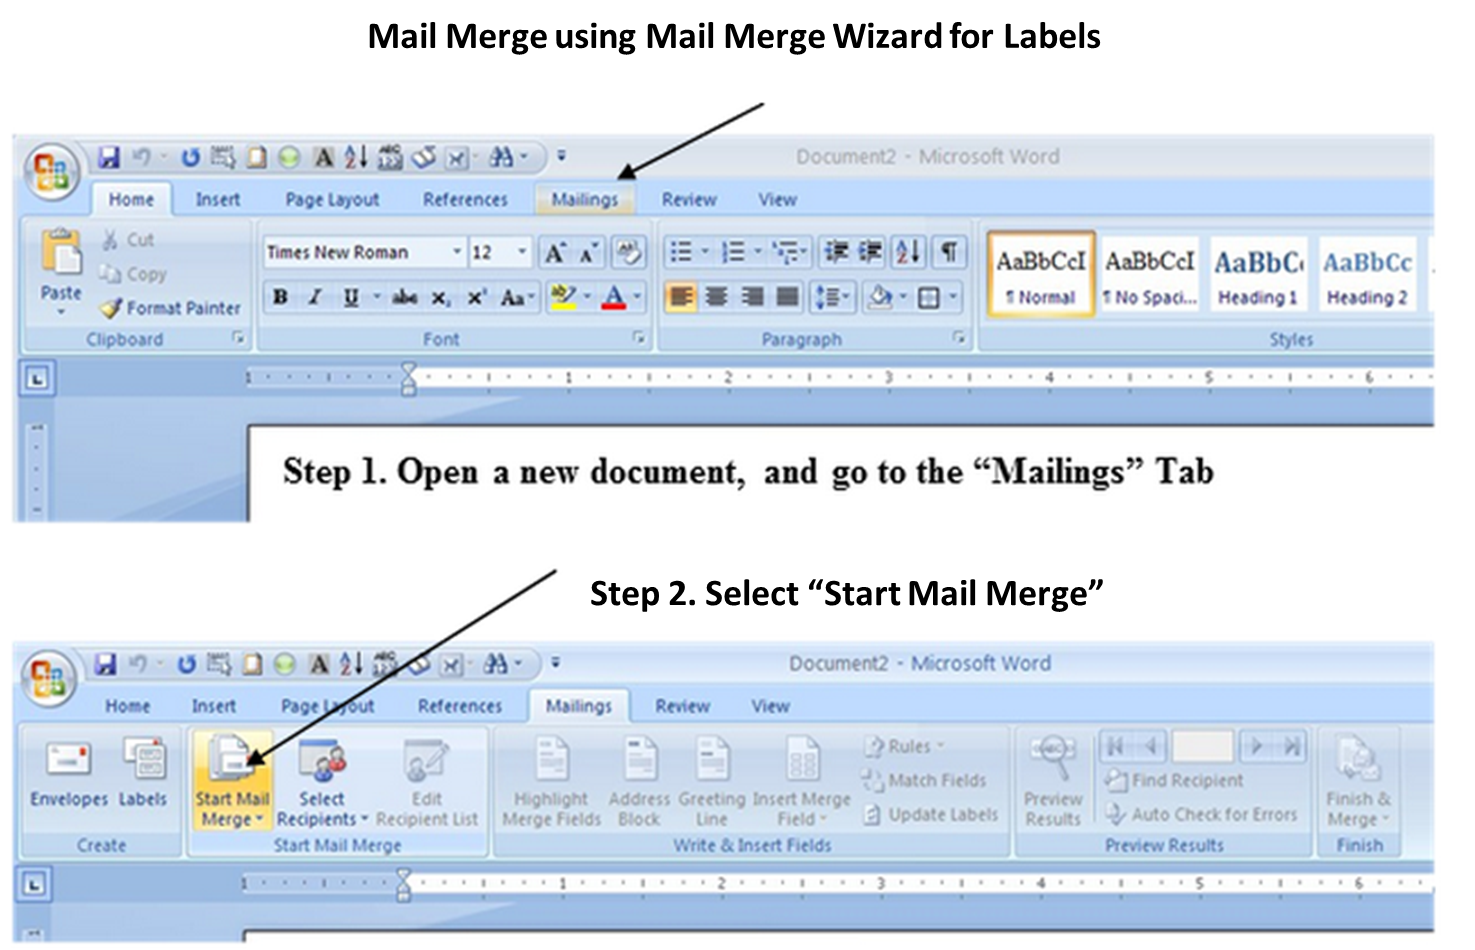 essay on mail merge Writing a mail merge document this is a guide on how you can create a mail merge document using microsoft word 2007 extended revised essay writing guidline.